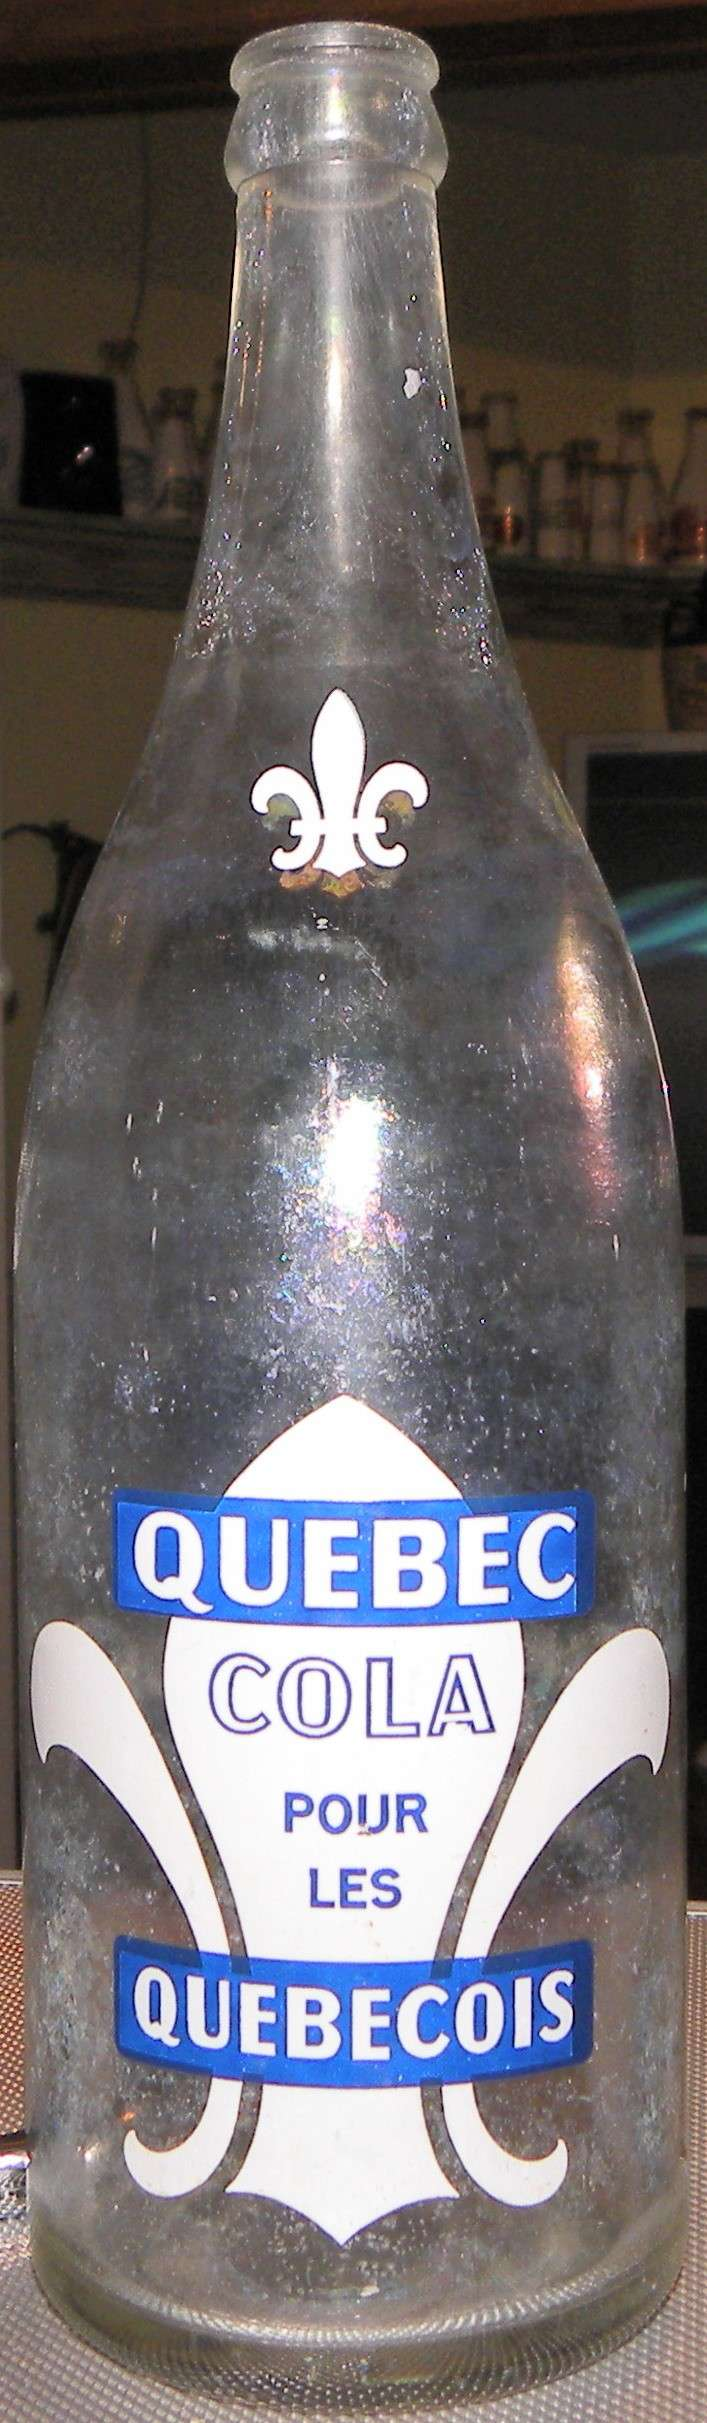 quebec cola pour les quebecois  Photo_22